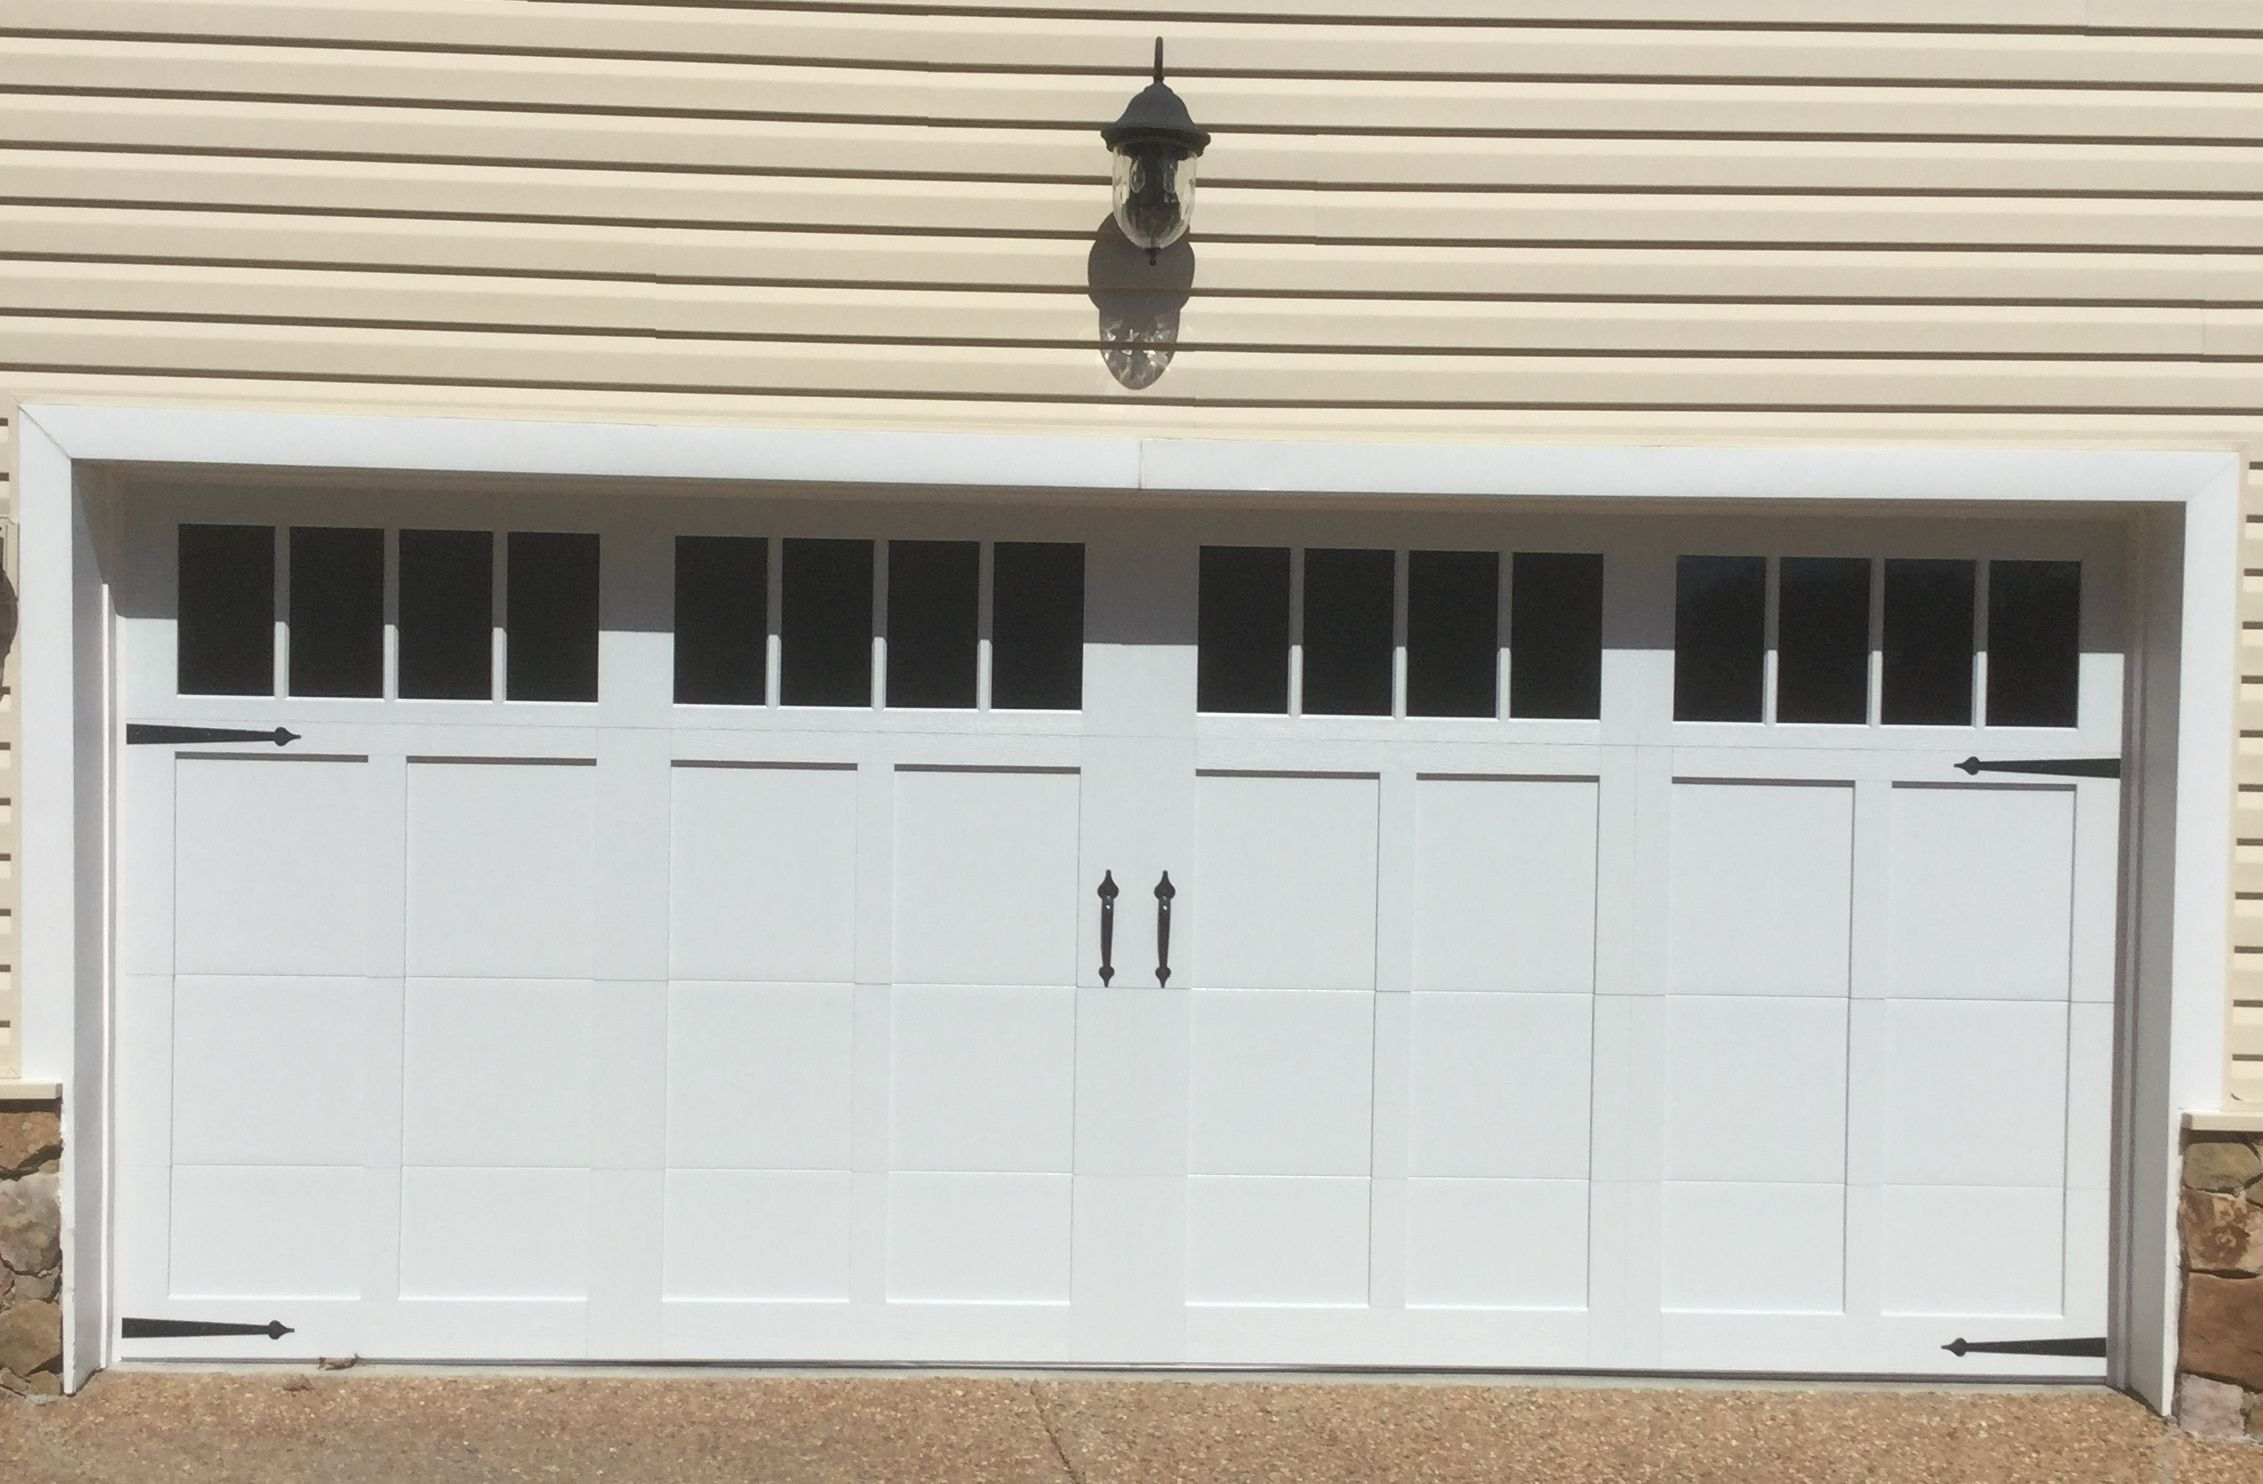 16x7 Model 5330 Carriage Style Garage Door With Top Glass And Madison Inserts Installed By The Richmond Store Carriage Style Garage Doors Doors Garage Doors